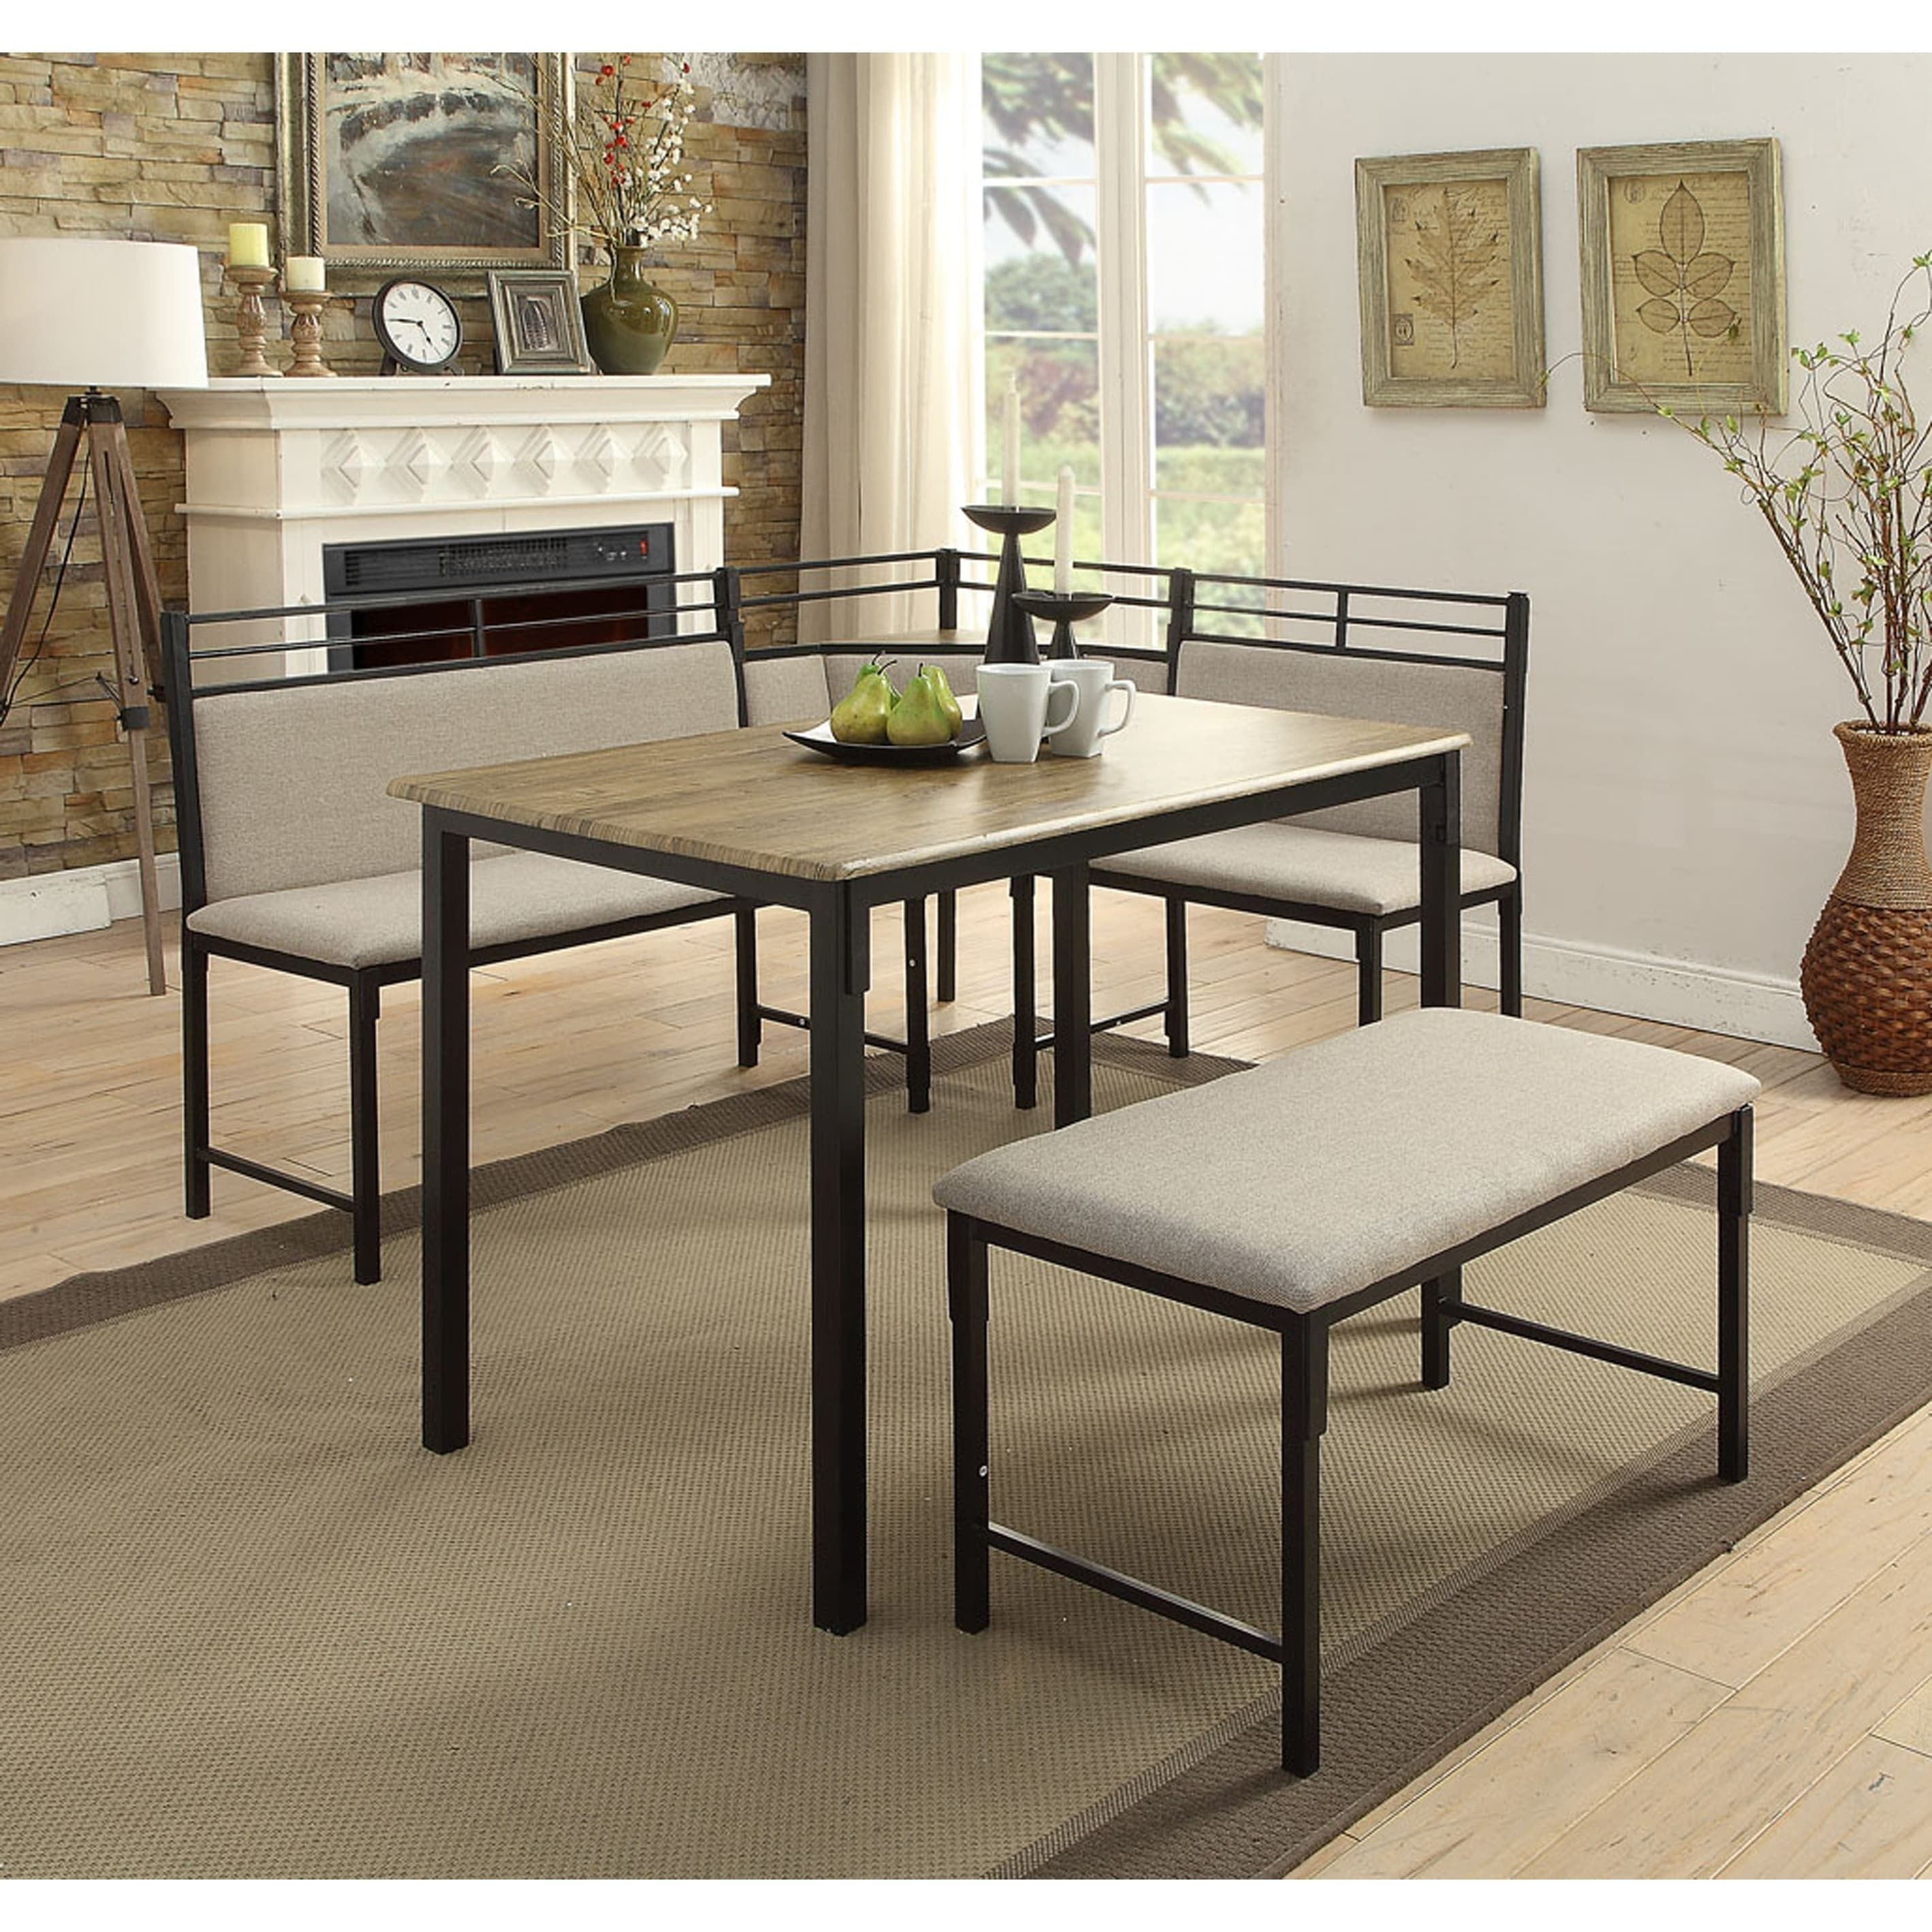 Boltzero Tool-less Corner Nook Dining Set (Table Corner Seat Bench ...